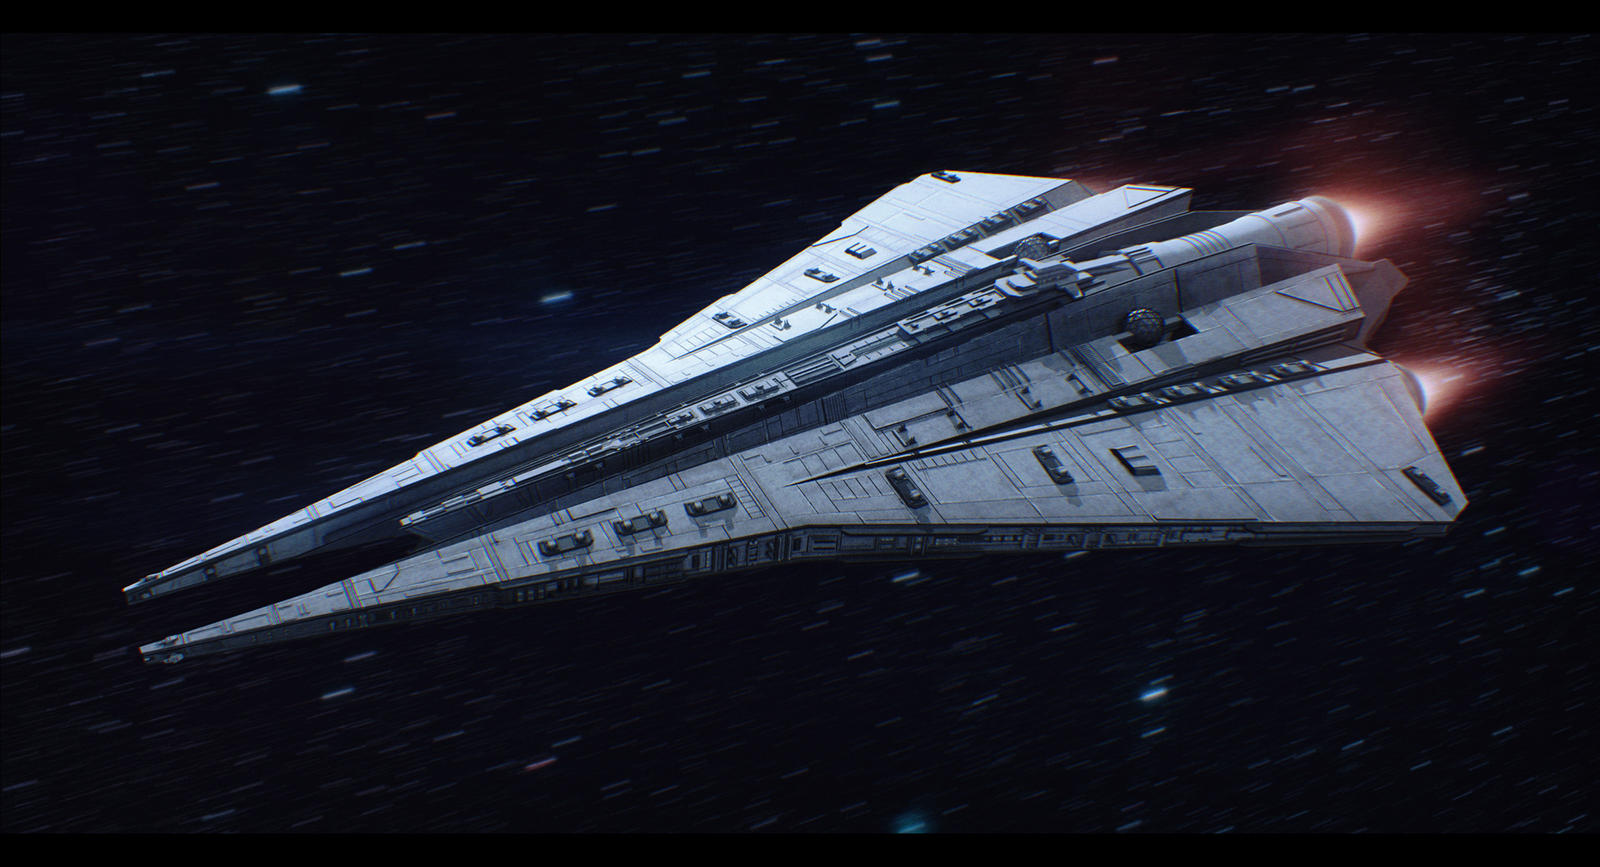 Kuat Drive Yards Thrawn Class Star Destroyer By Shoguneagle On